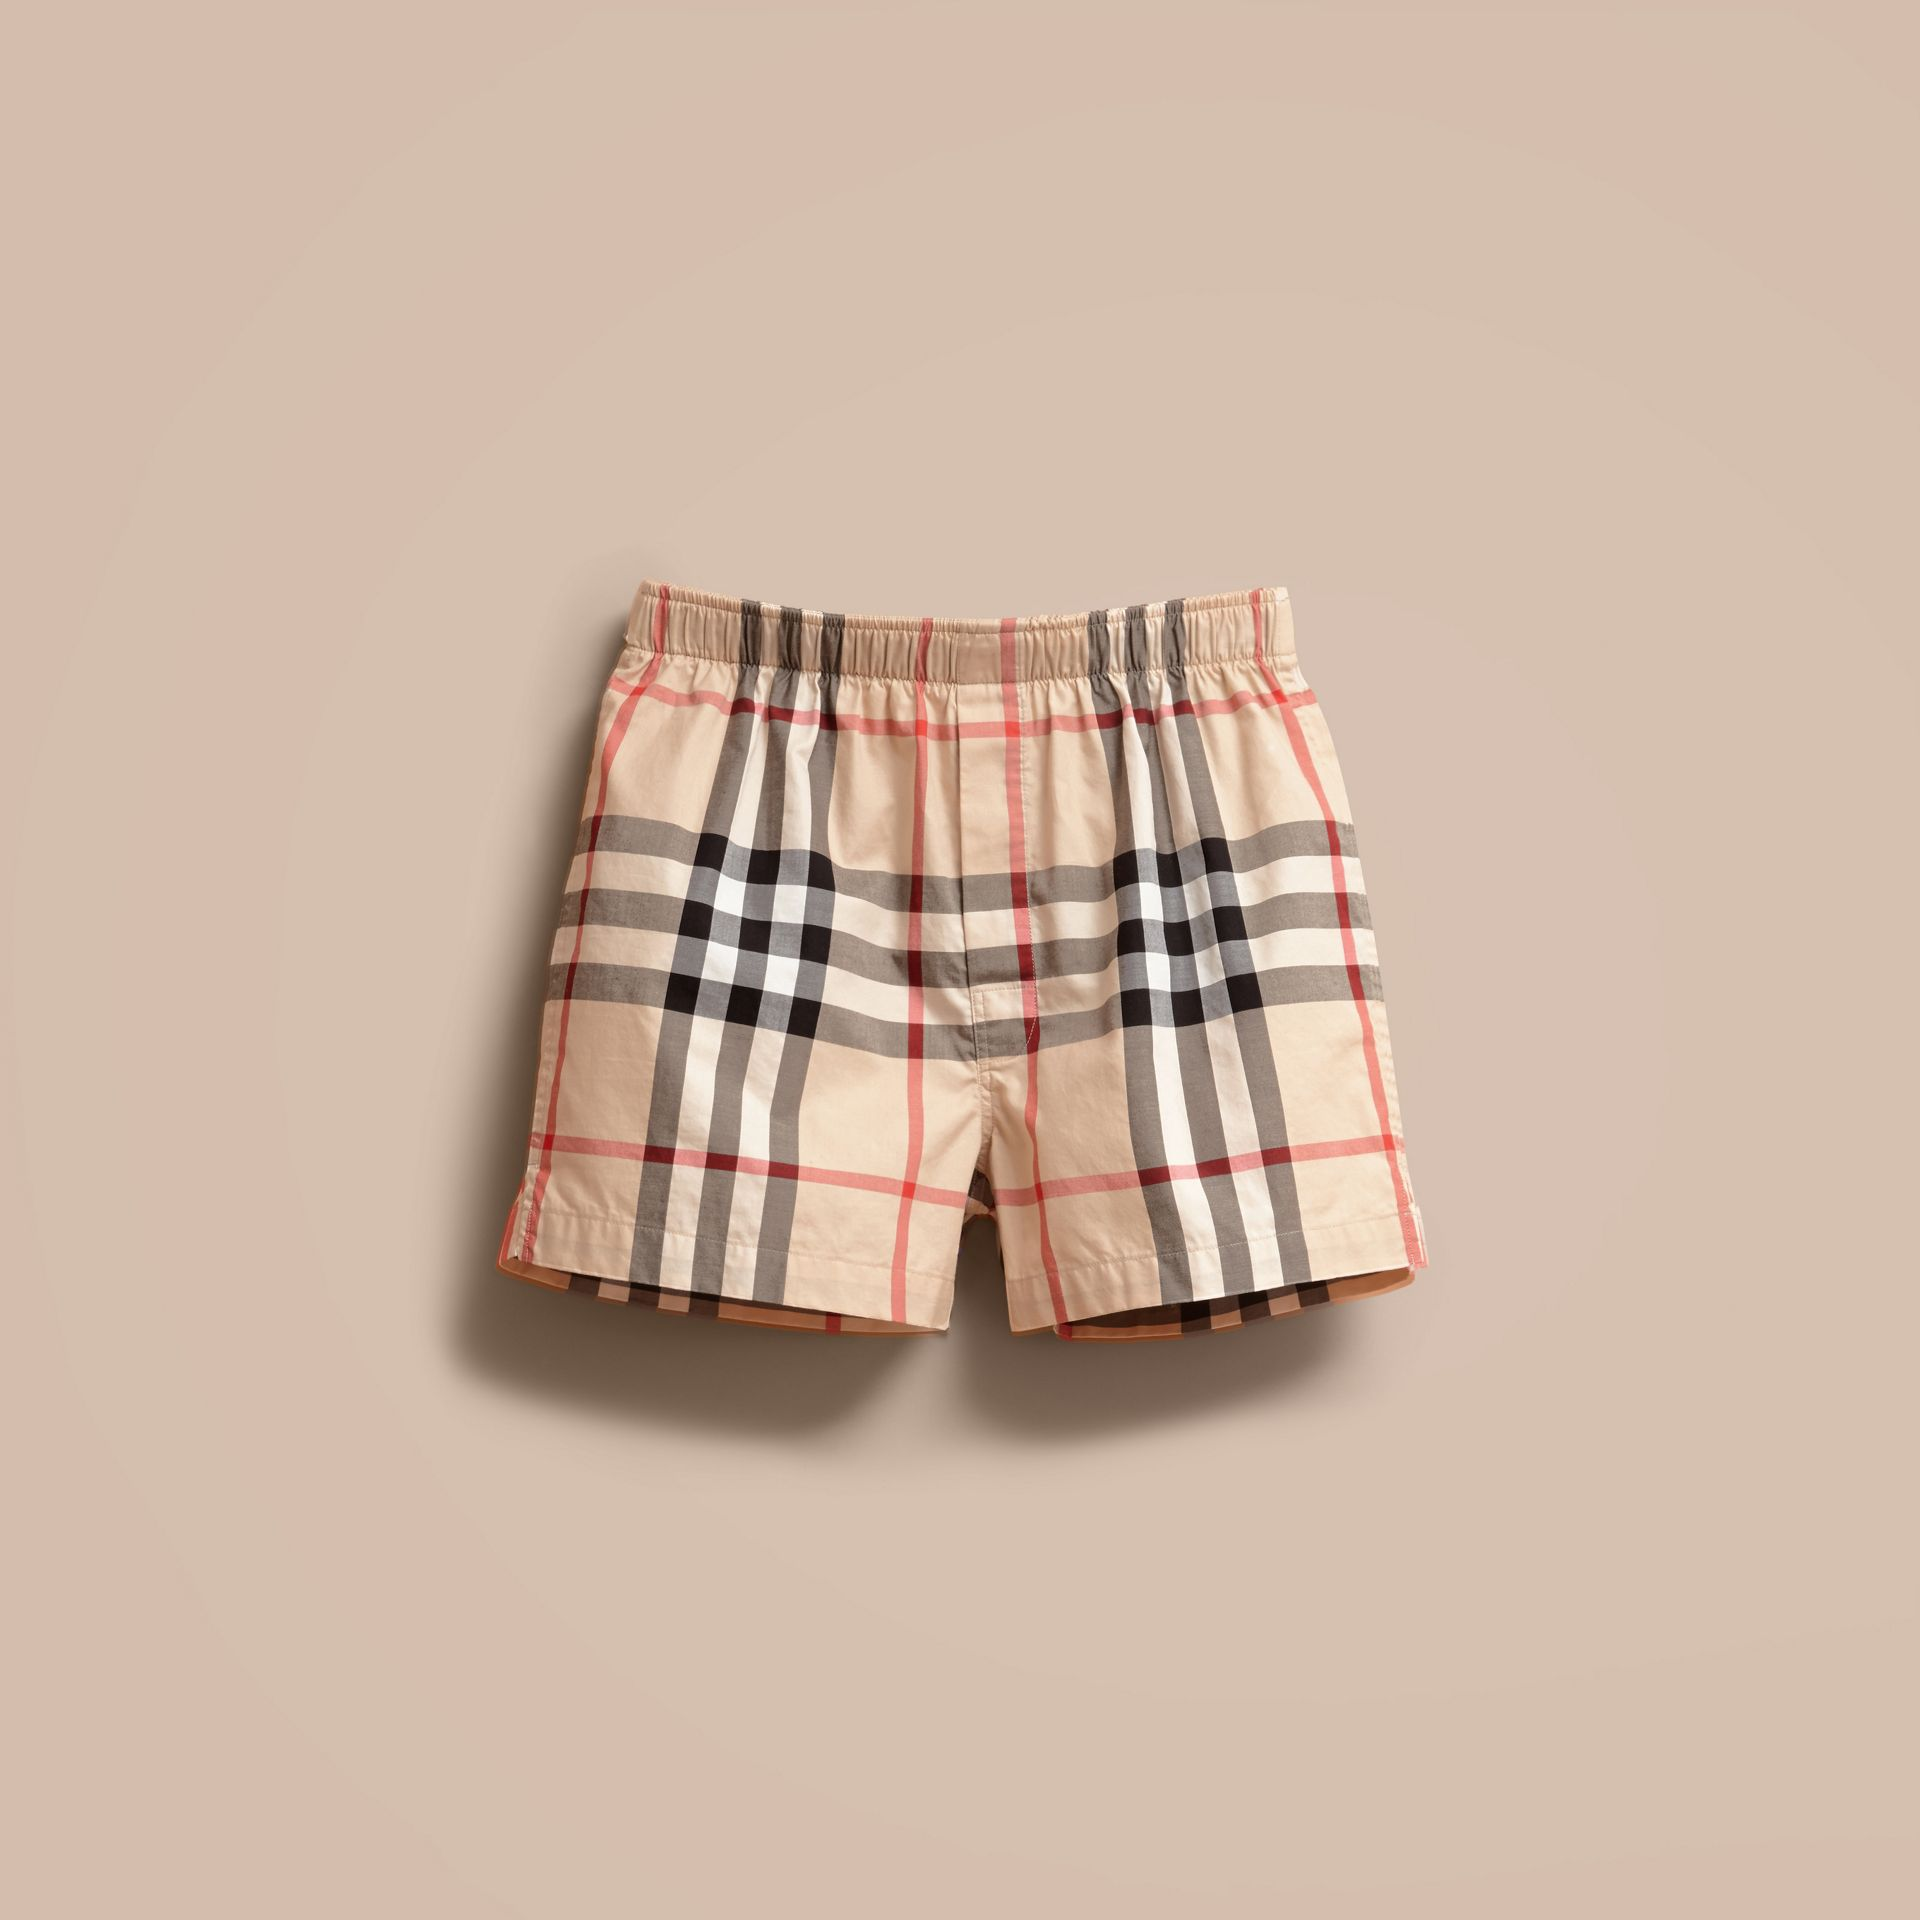 Check Twill Cotton Boxer Shorts in New Classic - Men | Burberry - gallery image 4